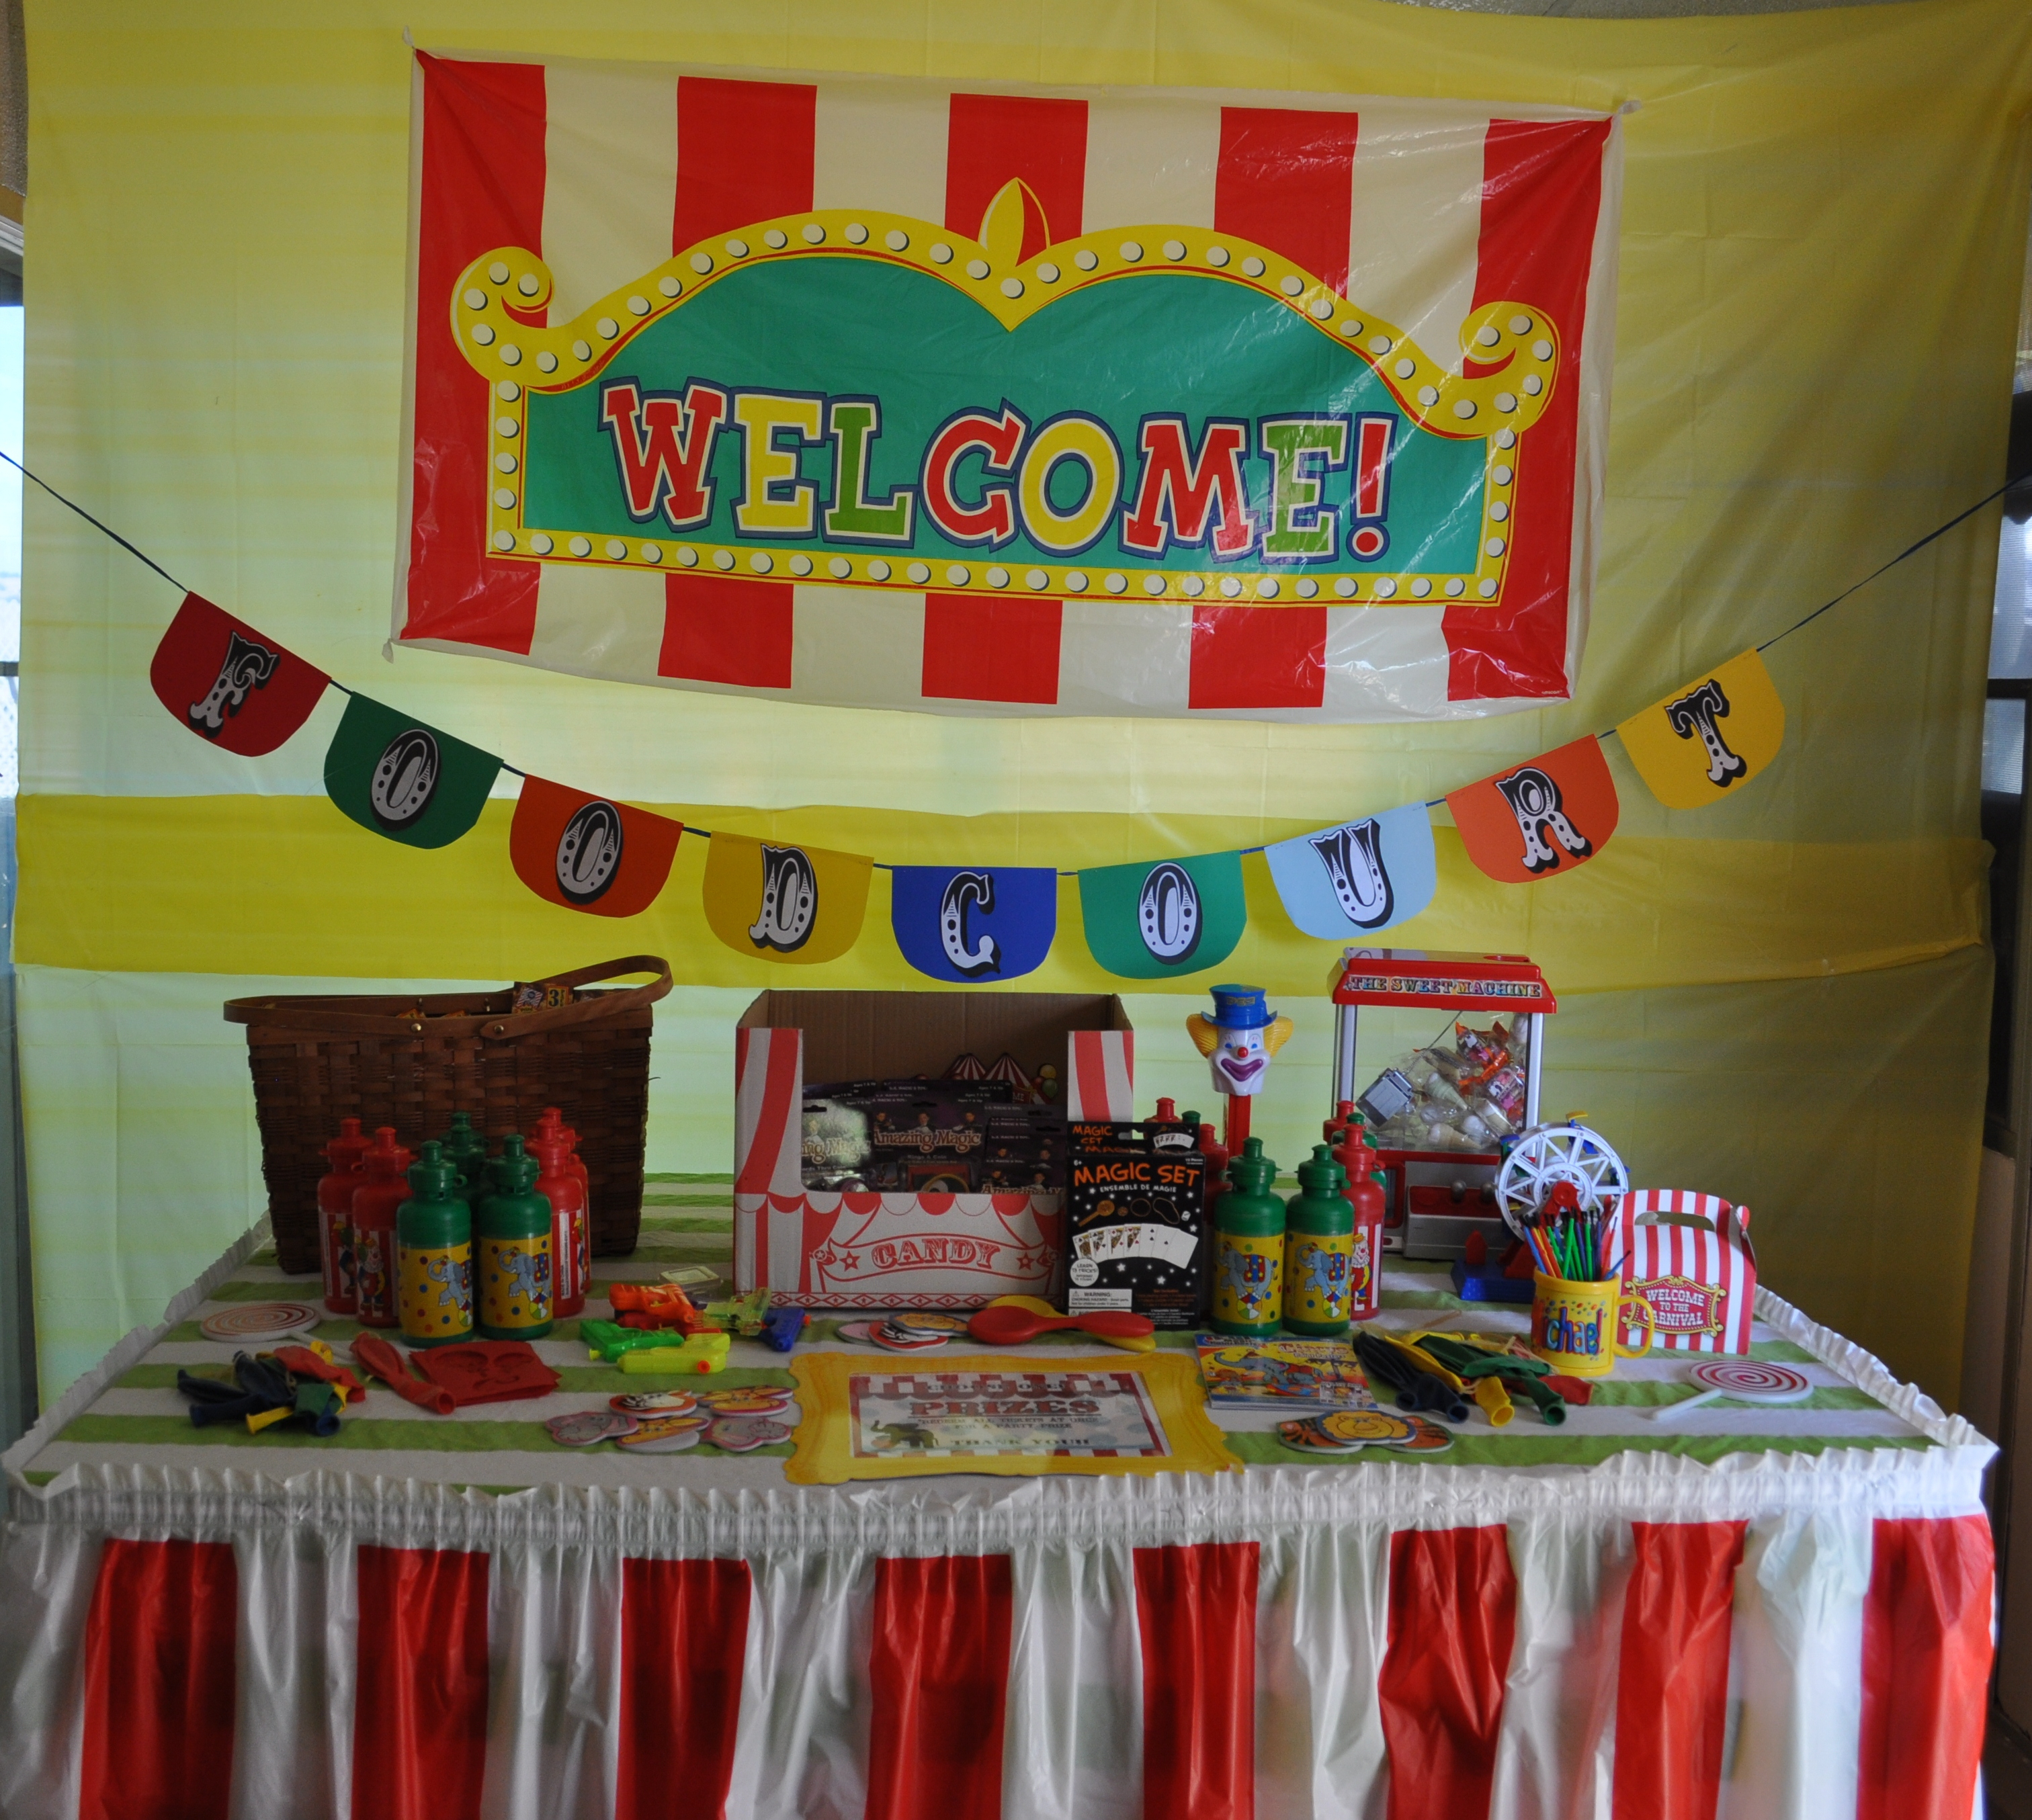 Amazing Party On A Budget: Backyard Carnival Party | Catch My Party throughout Luxury Backyard Carnival